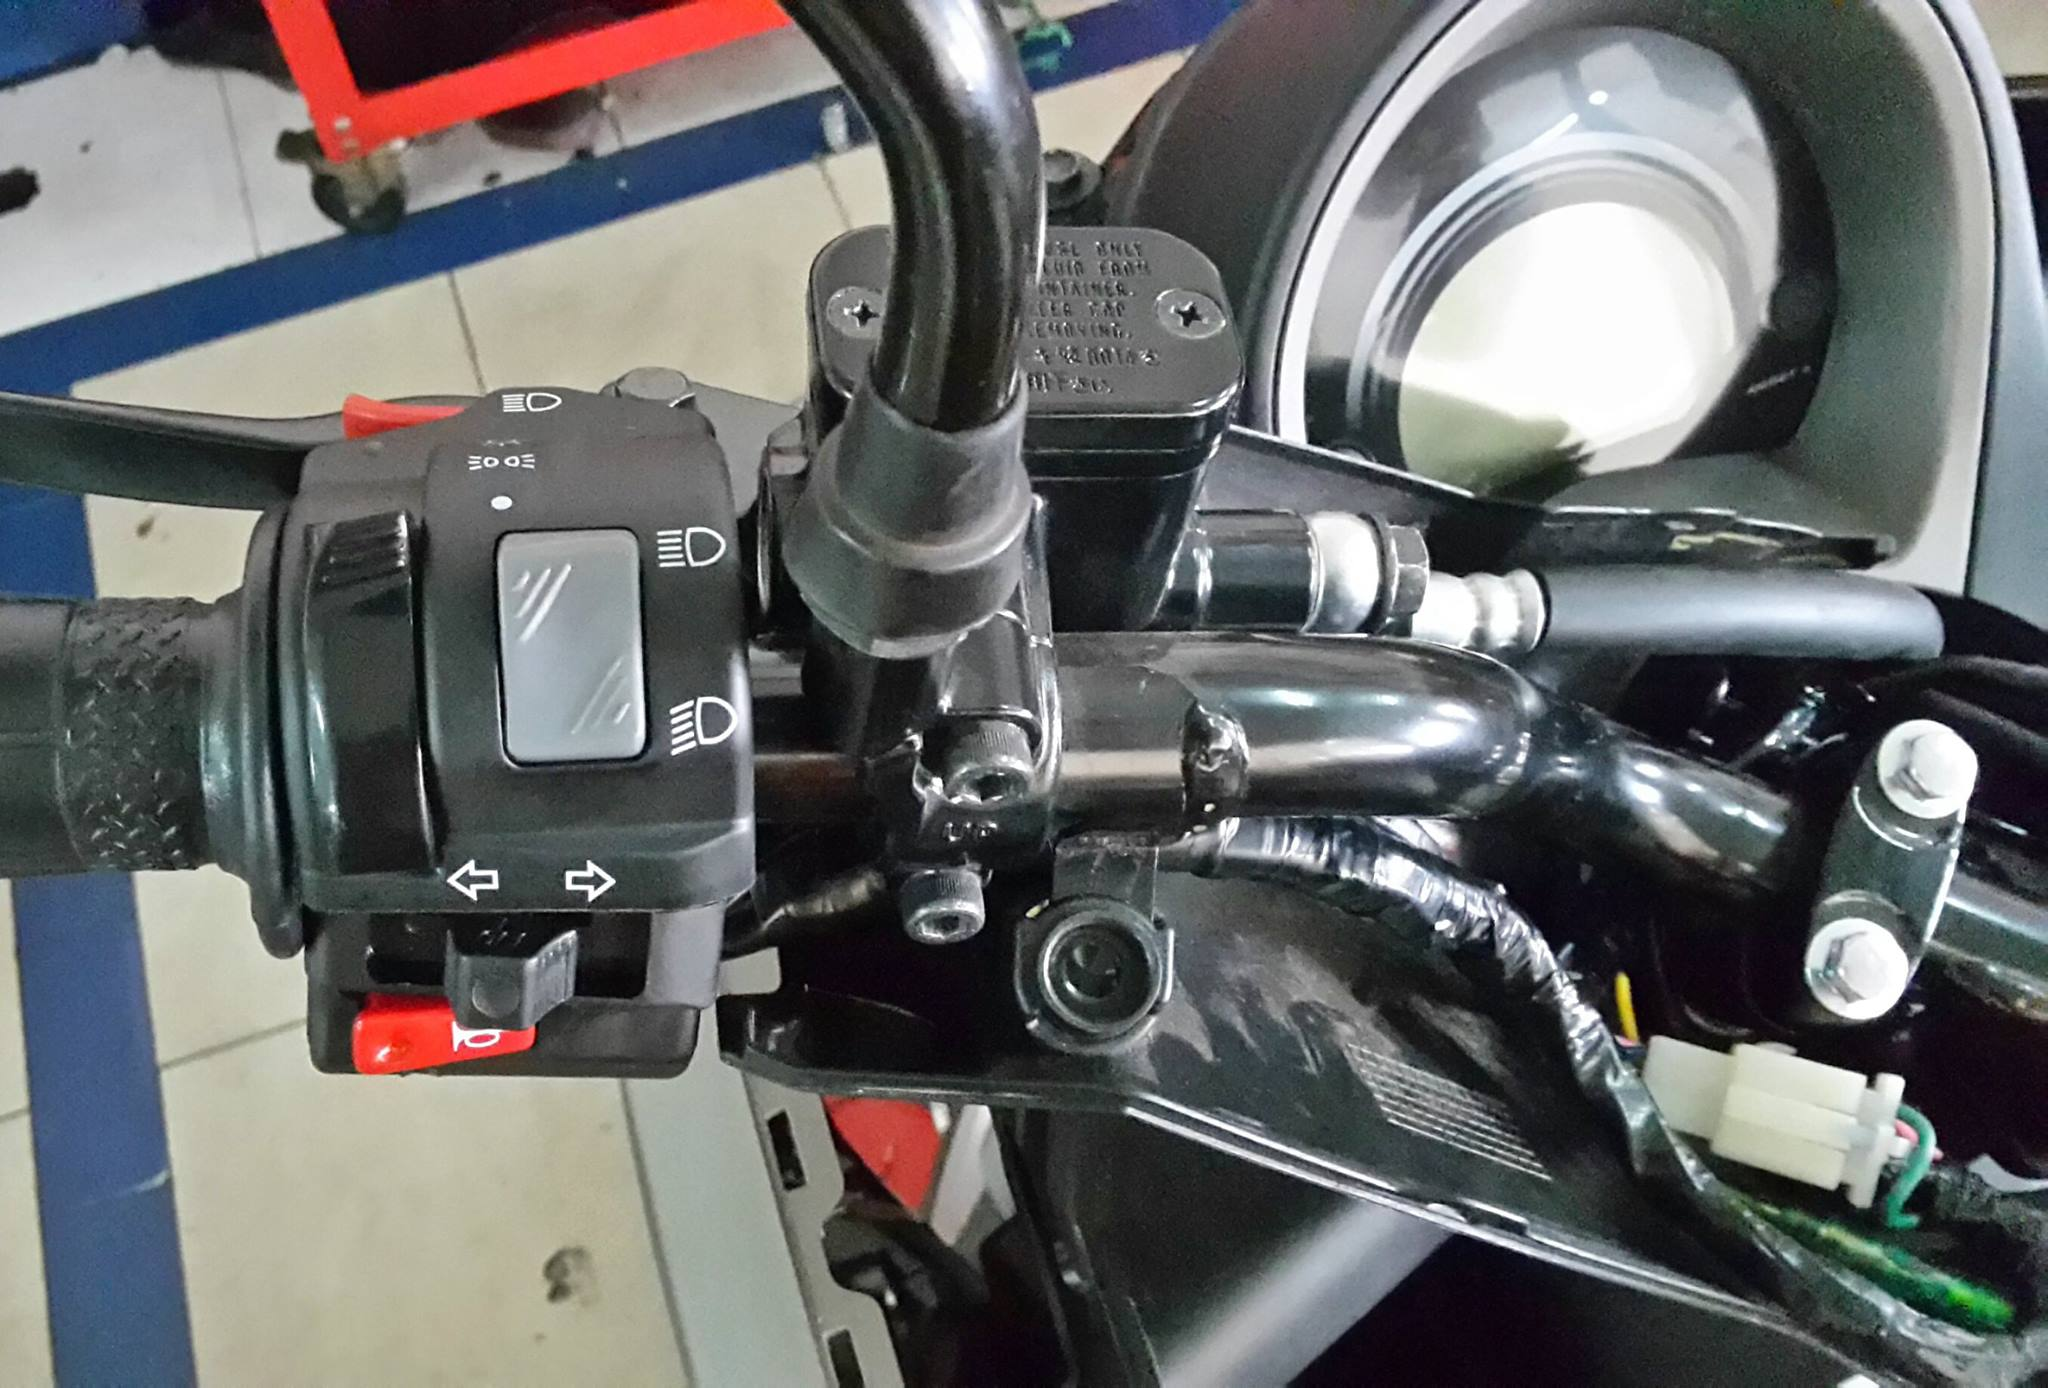 Wiring diagram nmax collection of wiring diagram wiring diagram yamaha nmax free download wiring diagram xwiaw ez rh xwiaw us wiring diagram nmax asfbconference2016 Choice Image